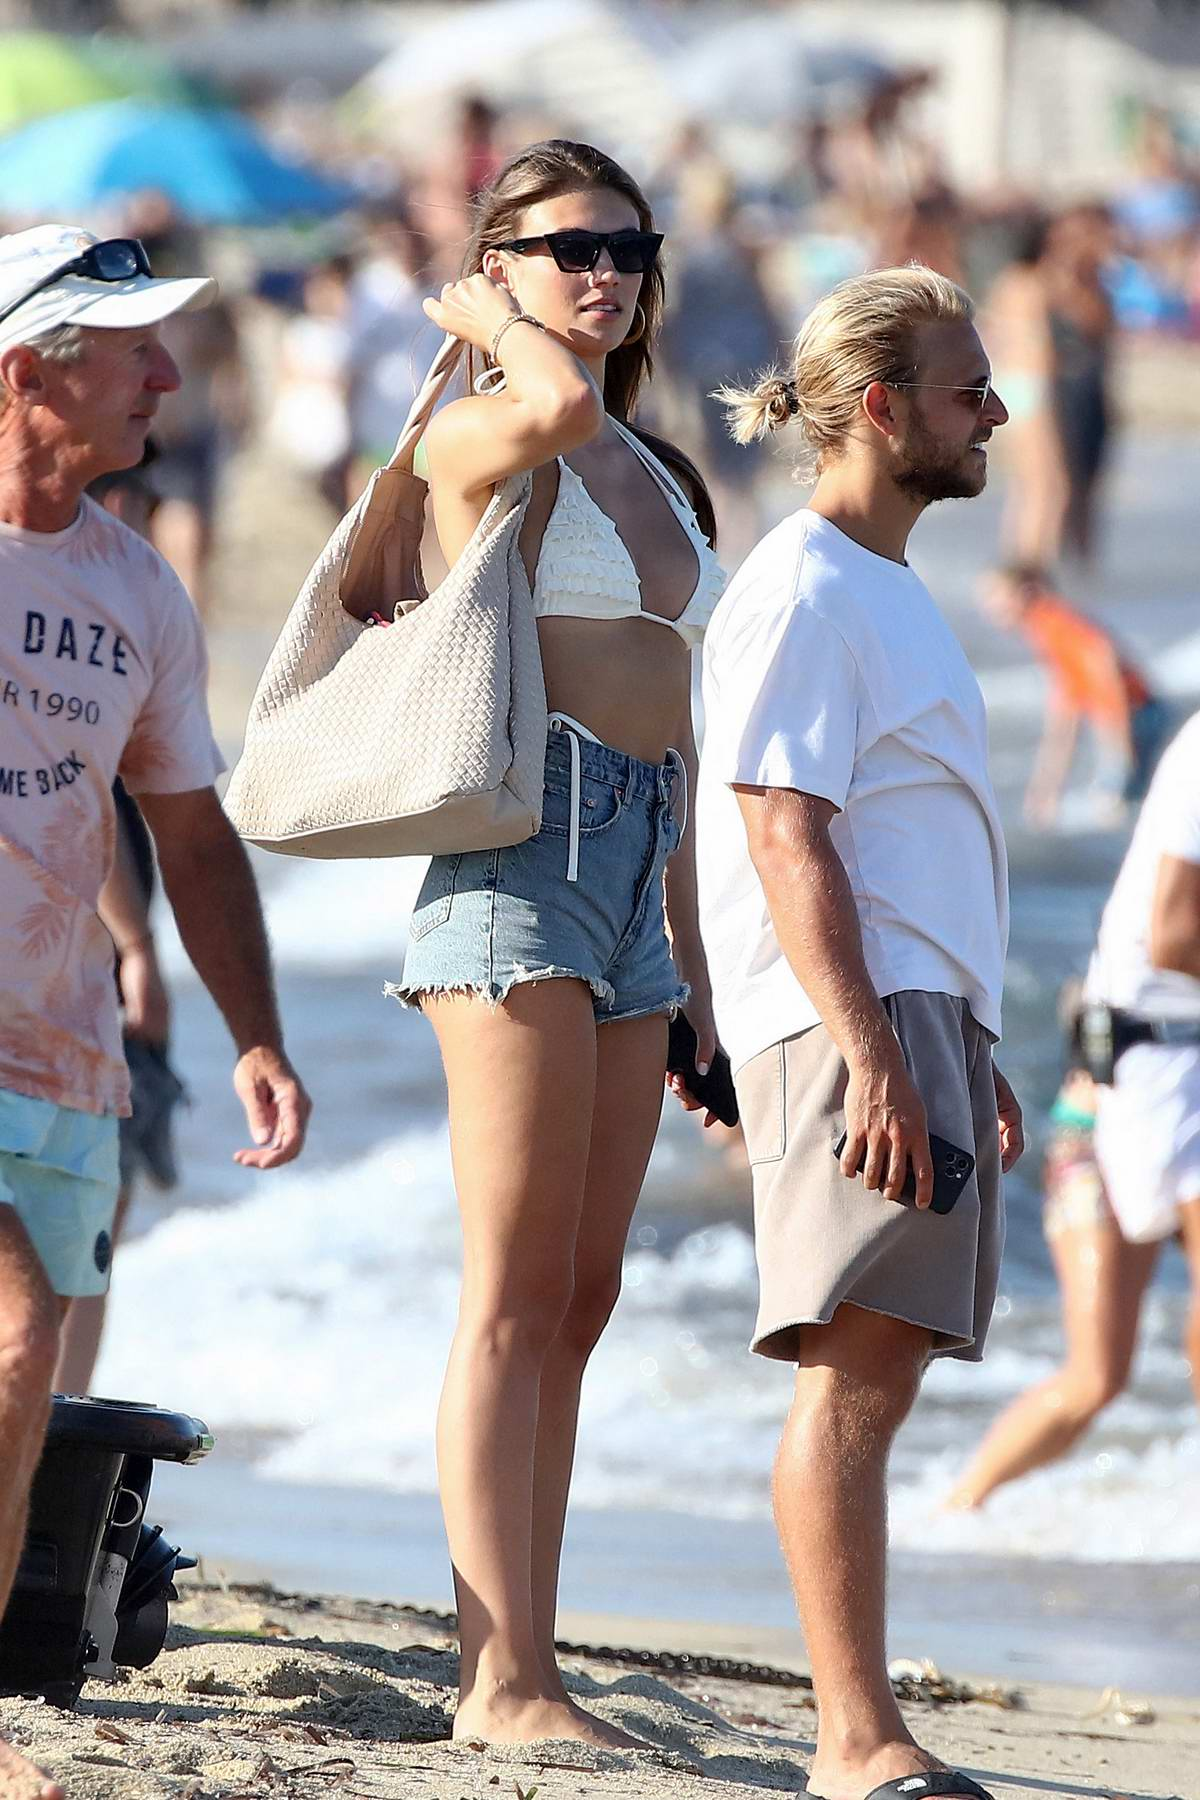 Lorena Rae hits the beach wearing a white bikini top and denim shorts in Saint-Tropez, France